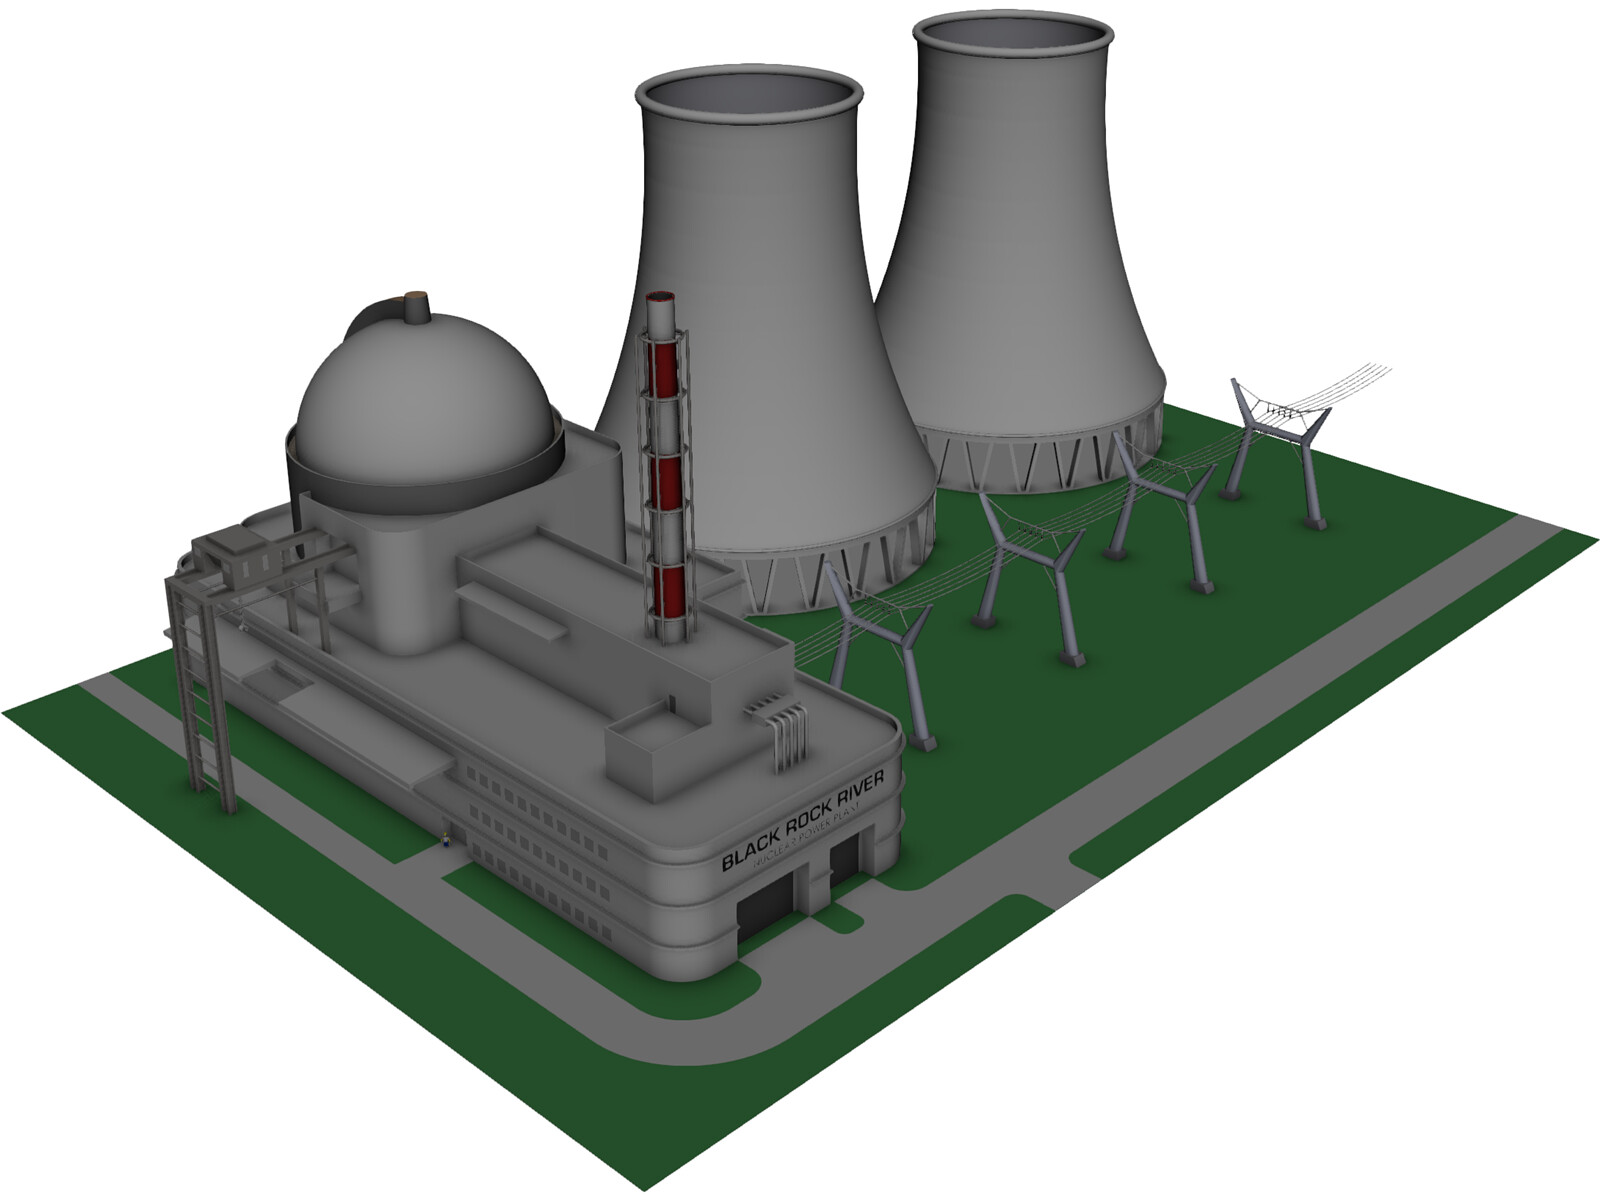 Black Rock River Nuclear Power Plant 3D Model